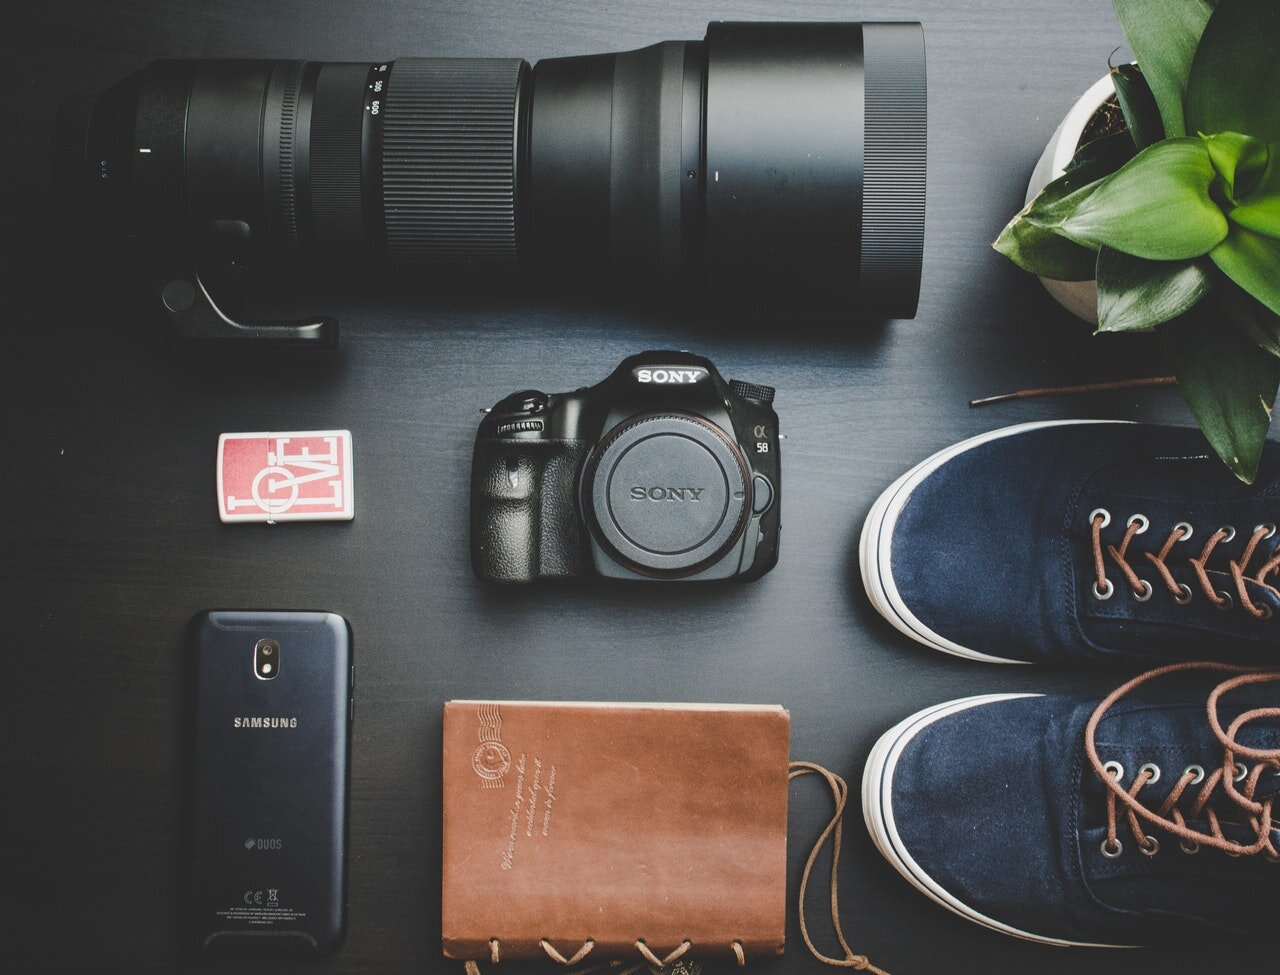 How do you decide between a mirrorless camera and a DSLR? Here's a guide for the best sony mirrorless camera for travellers.